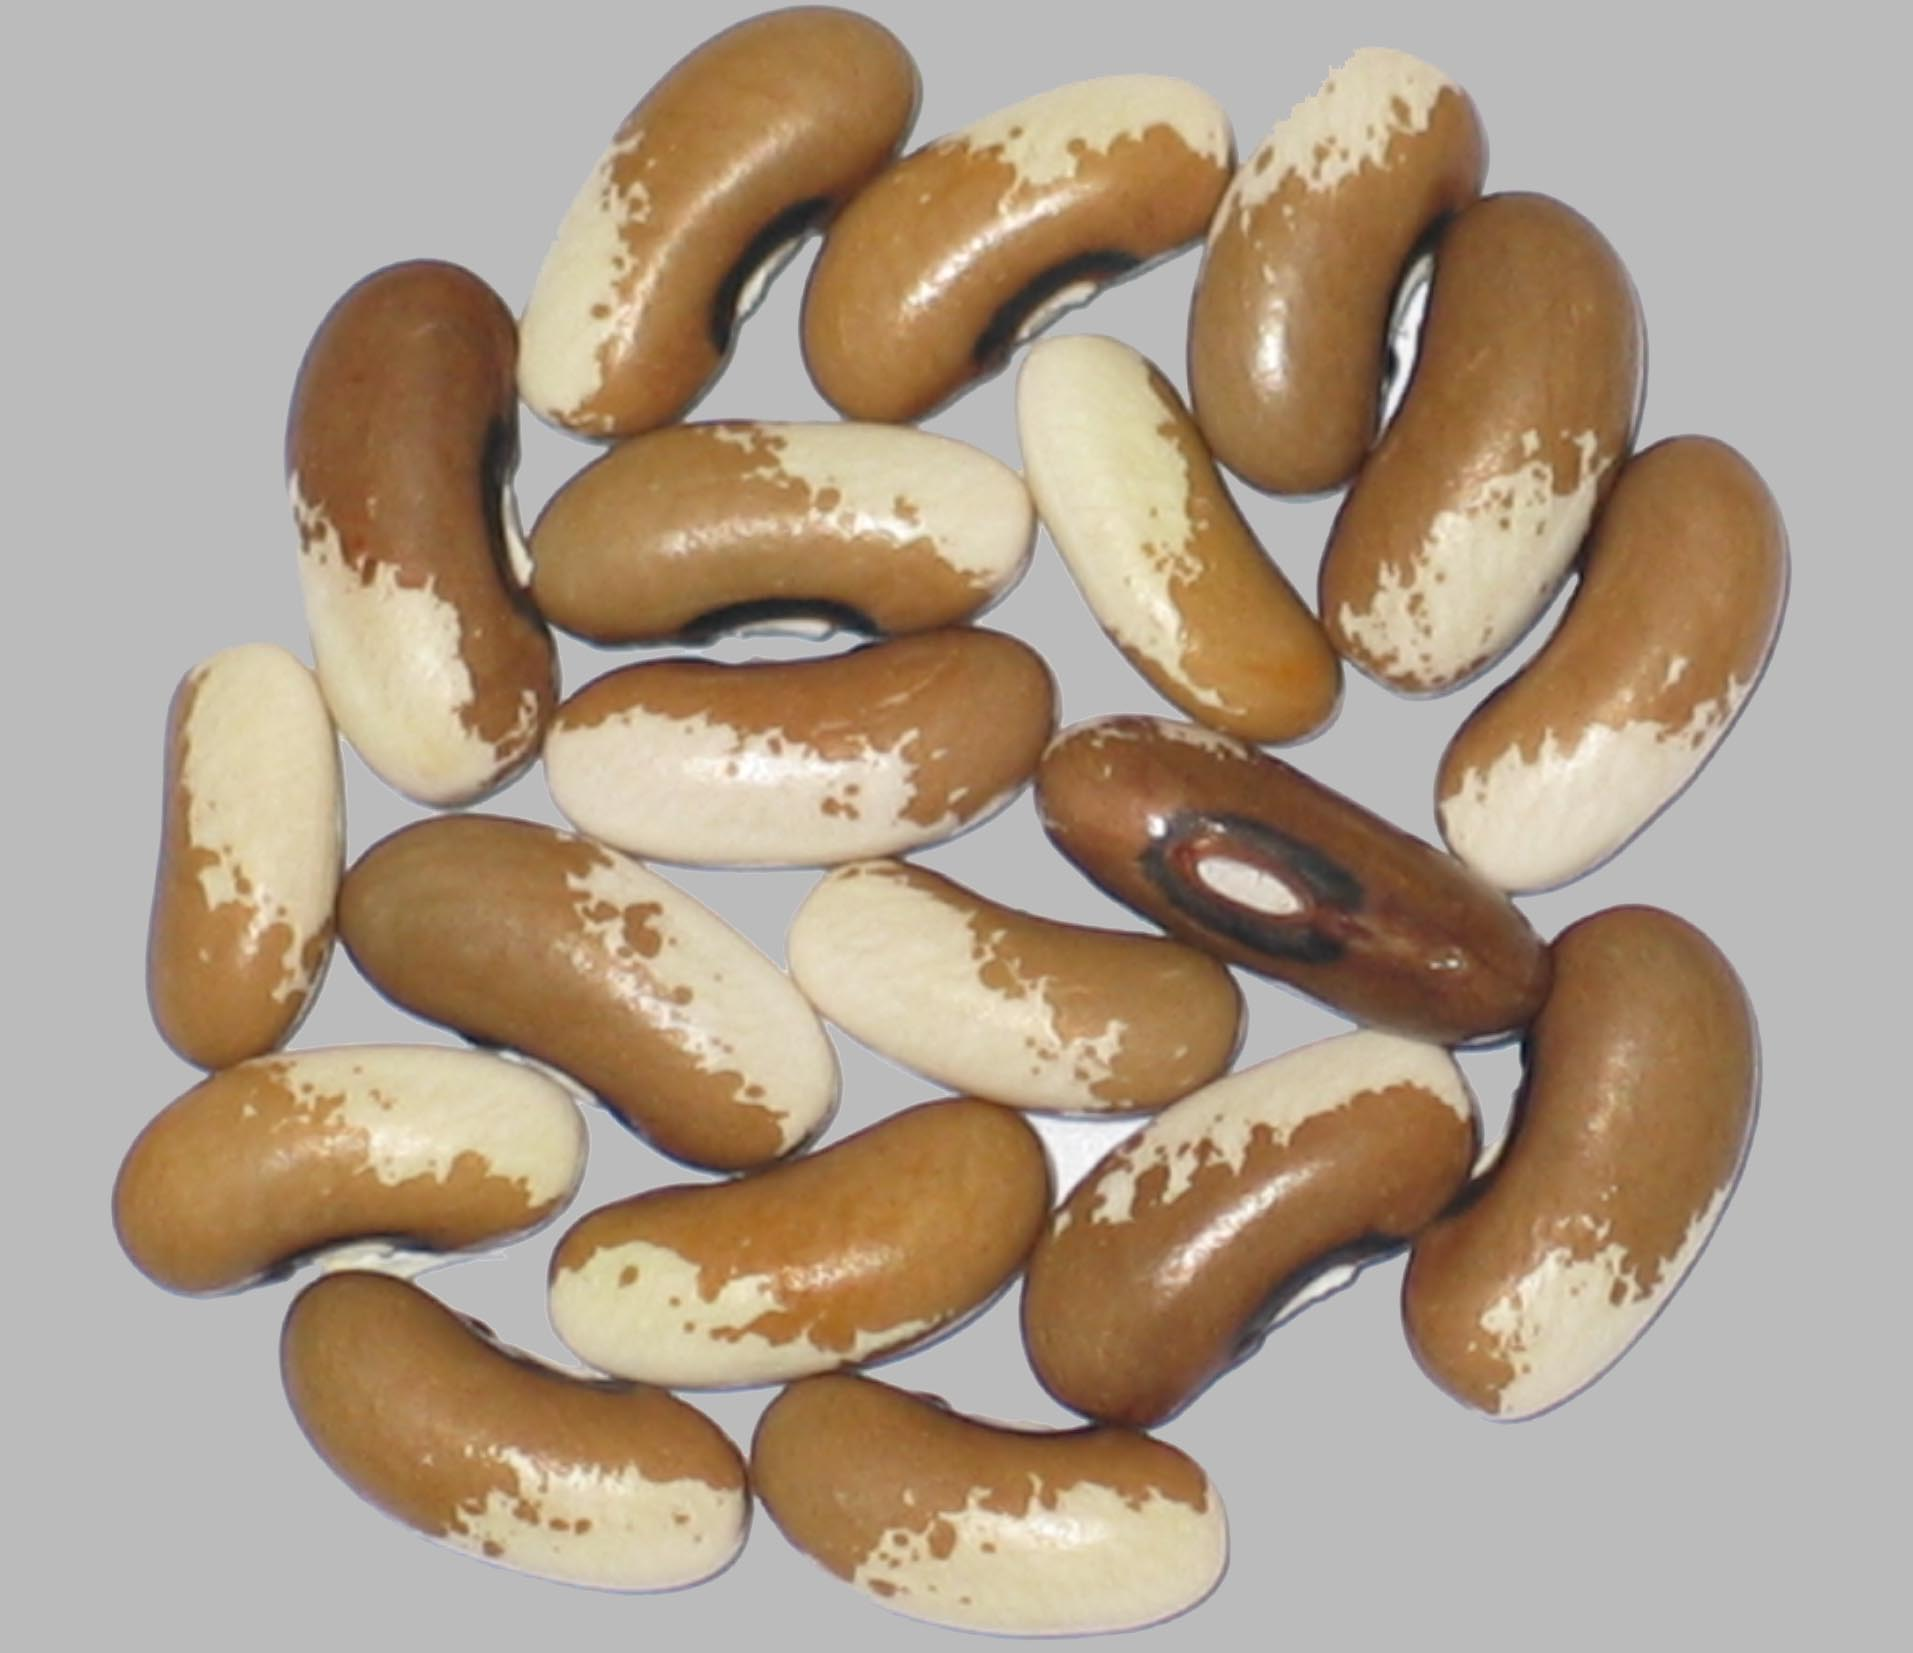 image of Painted Pony beans